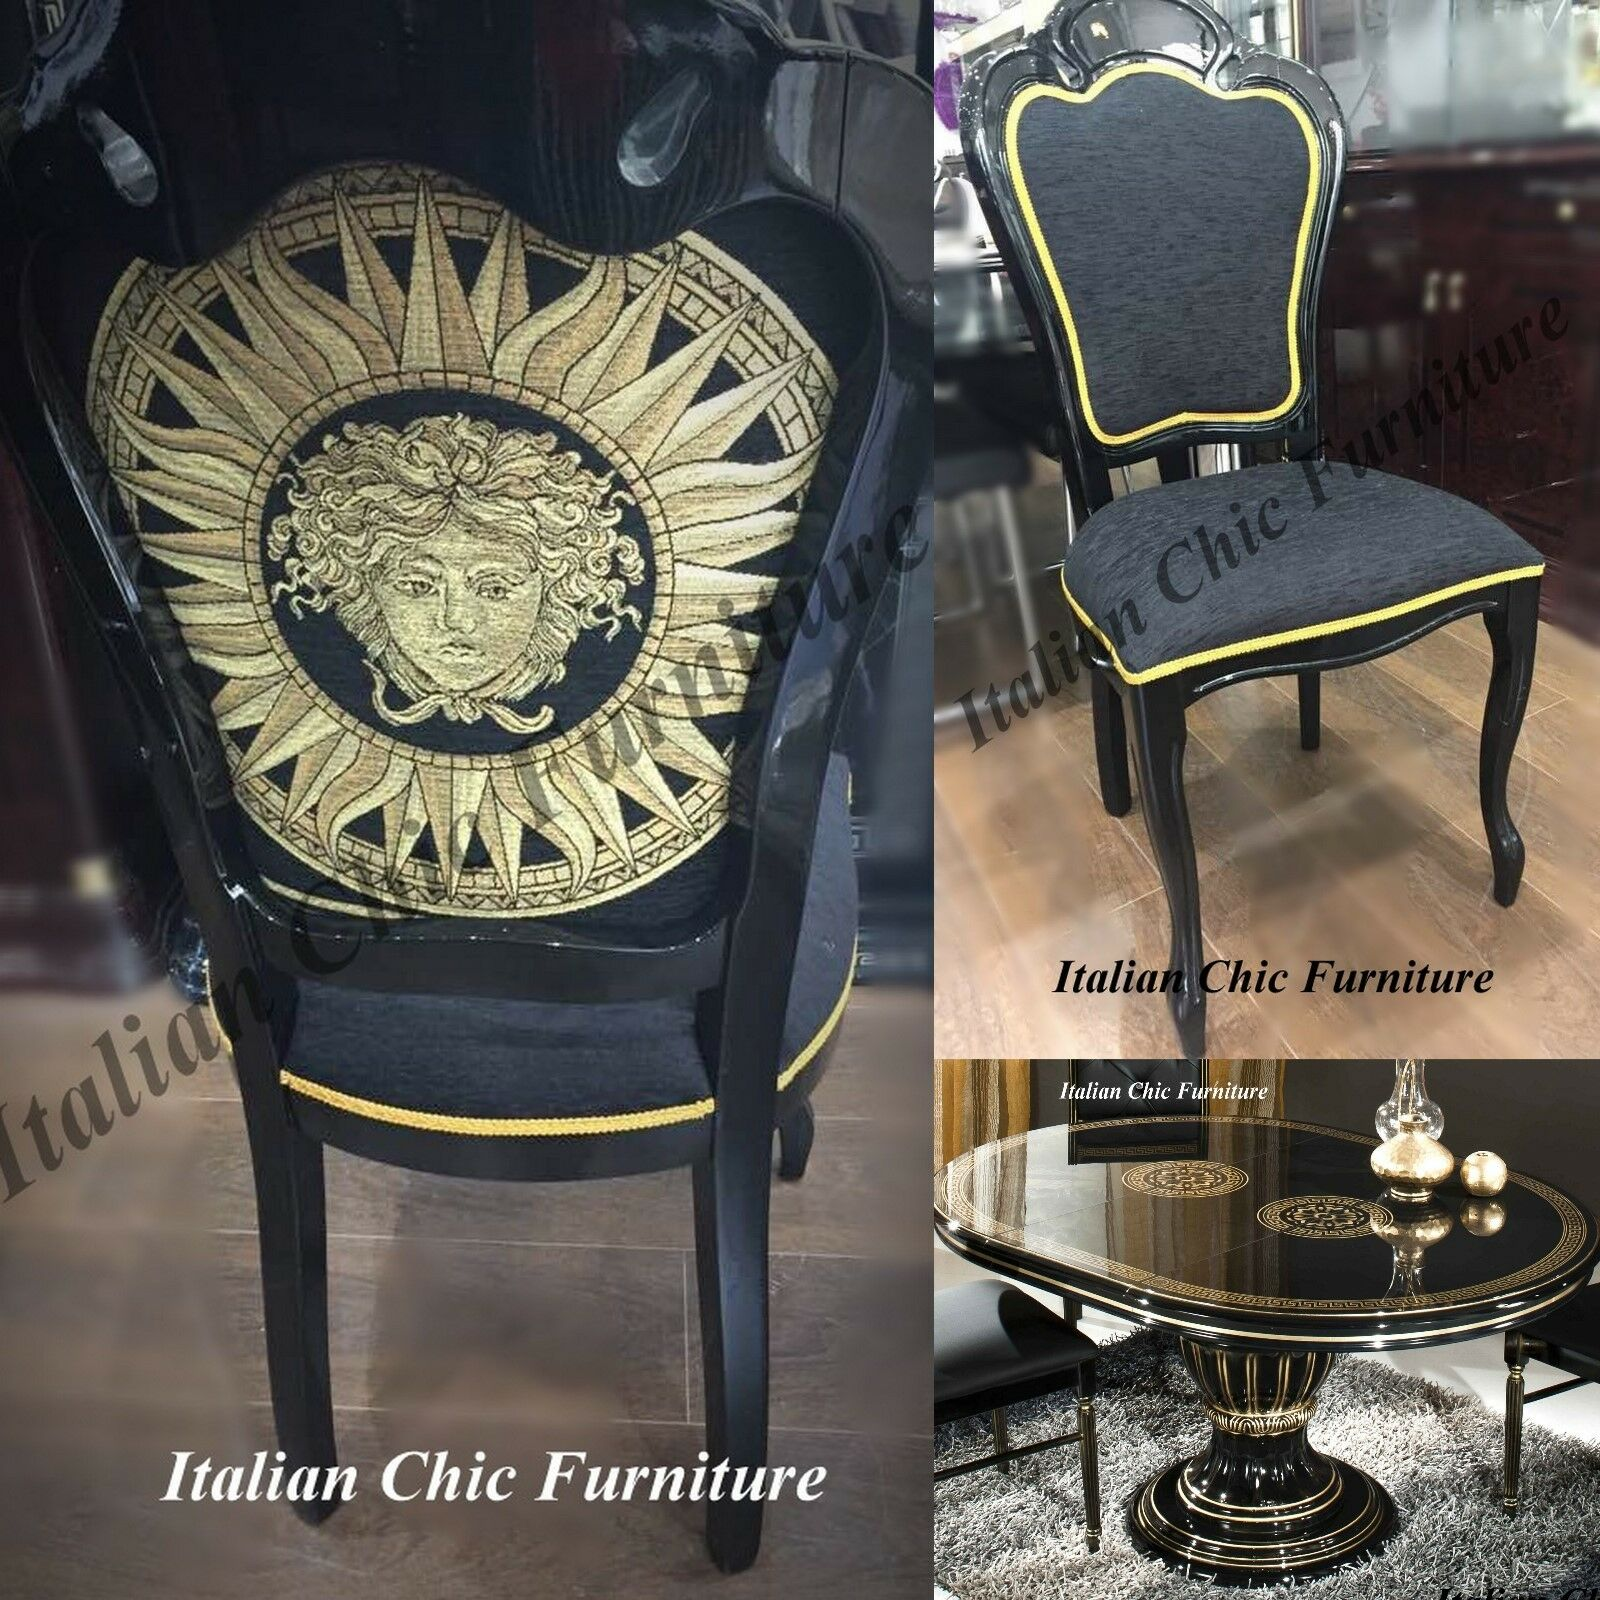 Versace Style Italian Made Dining Table and Chairs Black  : Versace Style Italian Made Dining Table and Chairs from picclick.co.uk size 1600 x 1600 jpeg 415kB